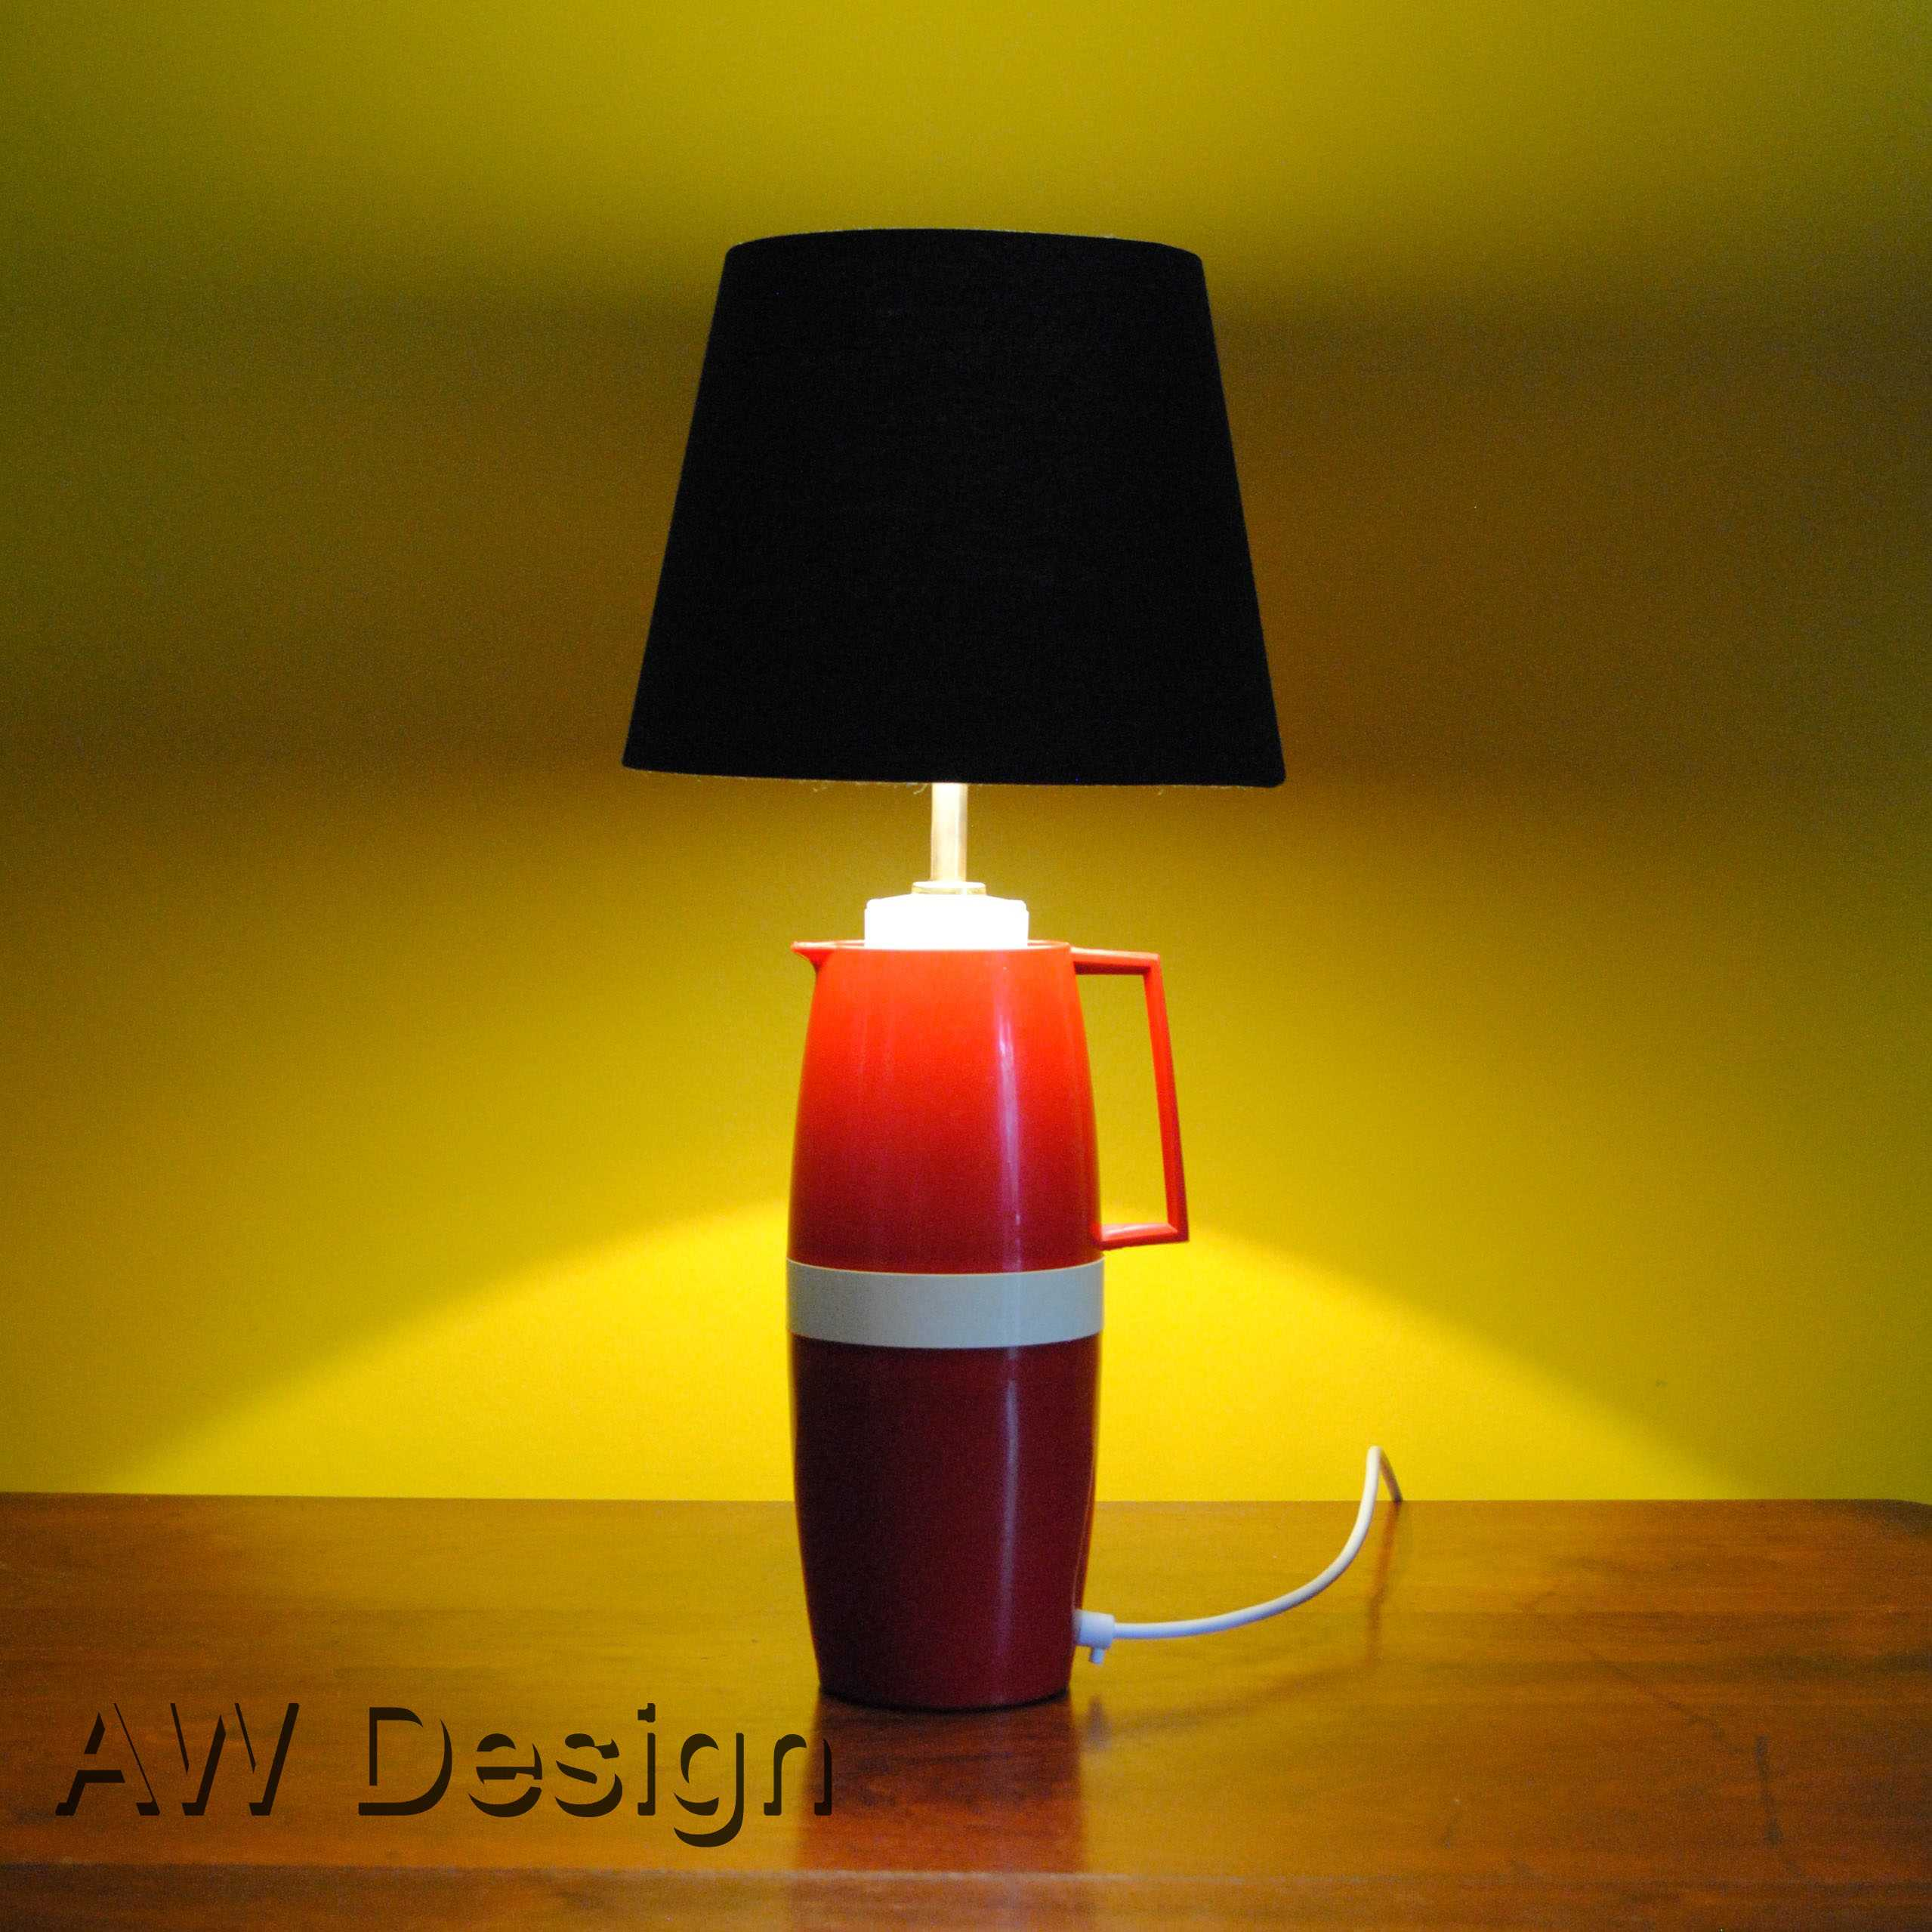 AW_Design_Upcycling_Thermos_upcycled_Lamp